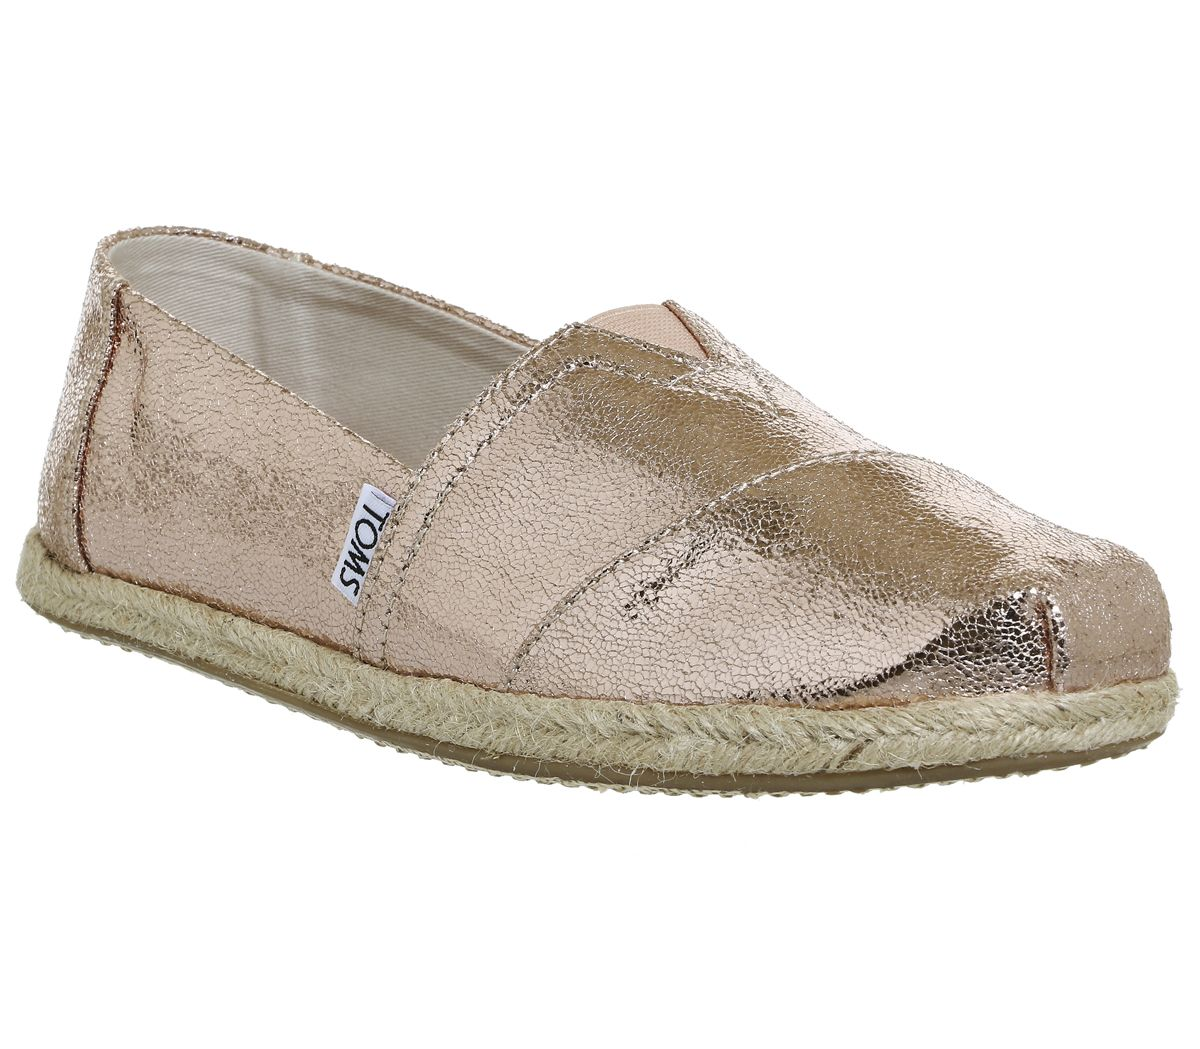 6d49e1ab790 Toms Seasonal Classic Slip On Rose Gold Metallic Exclusive - Flats